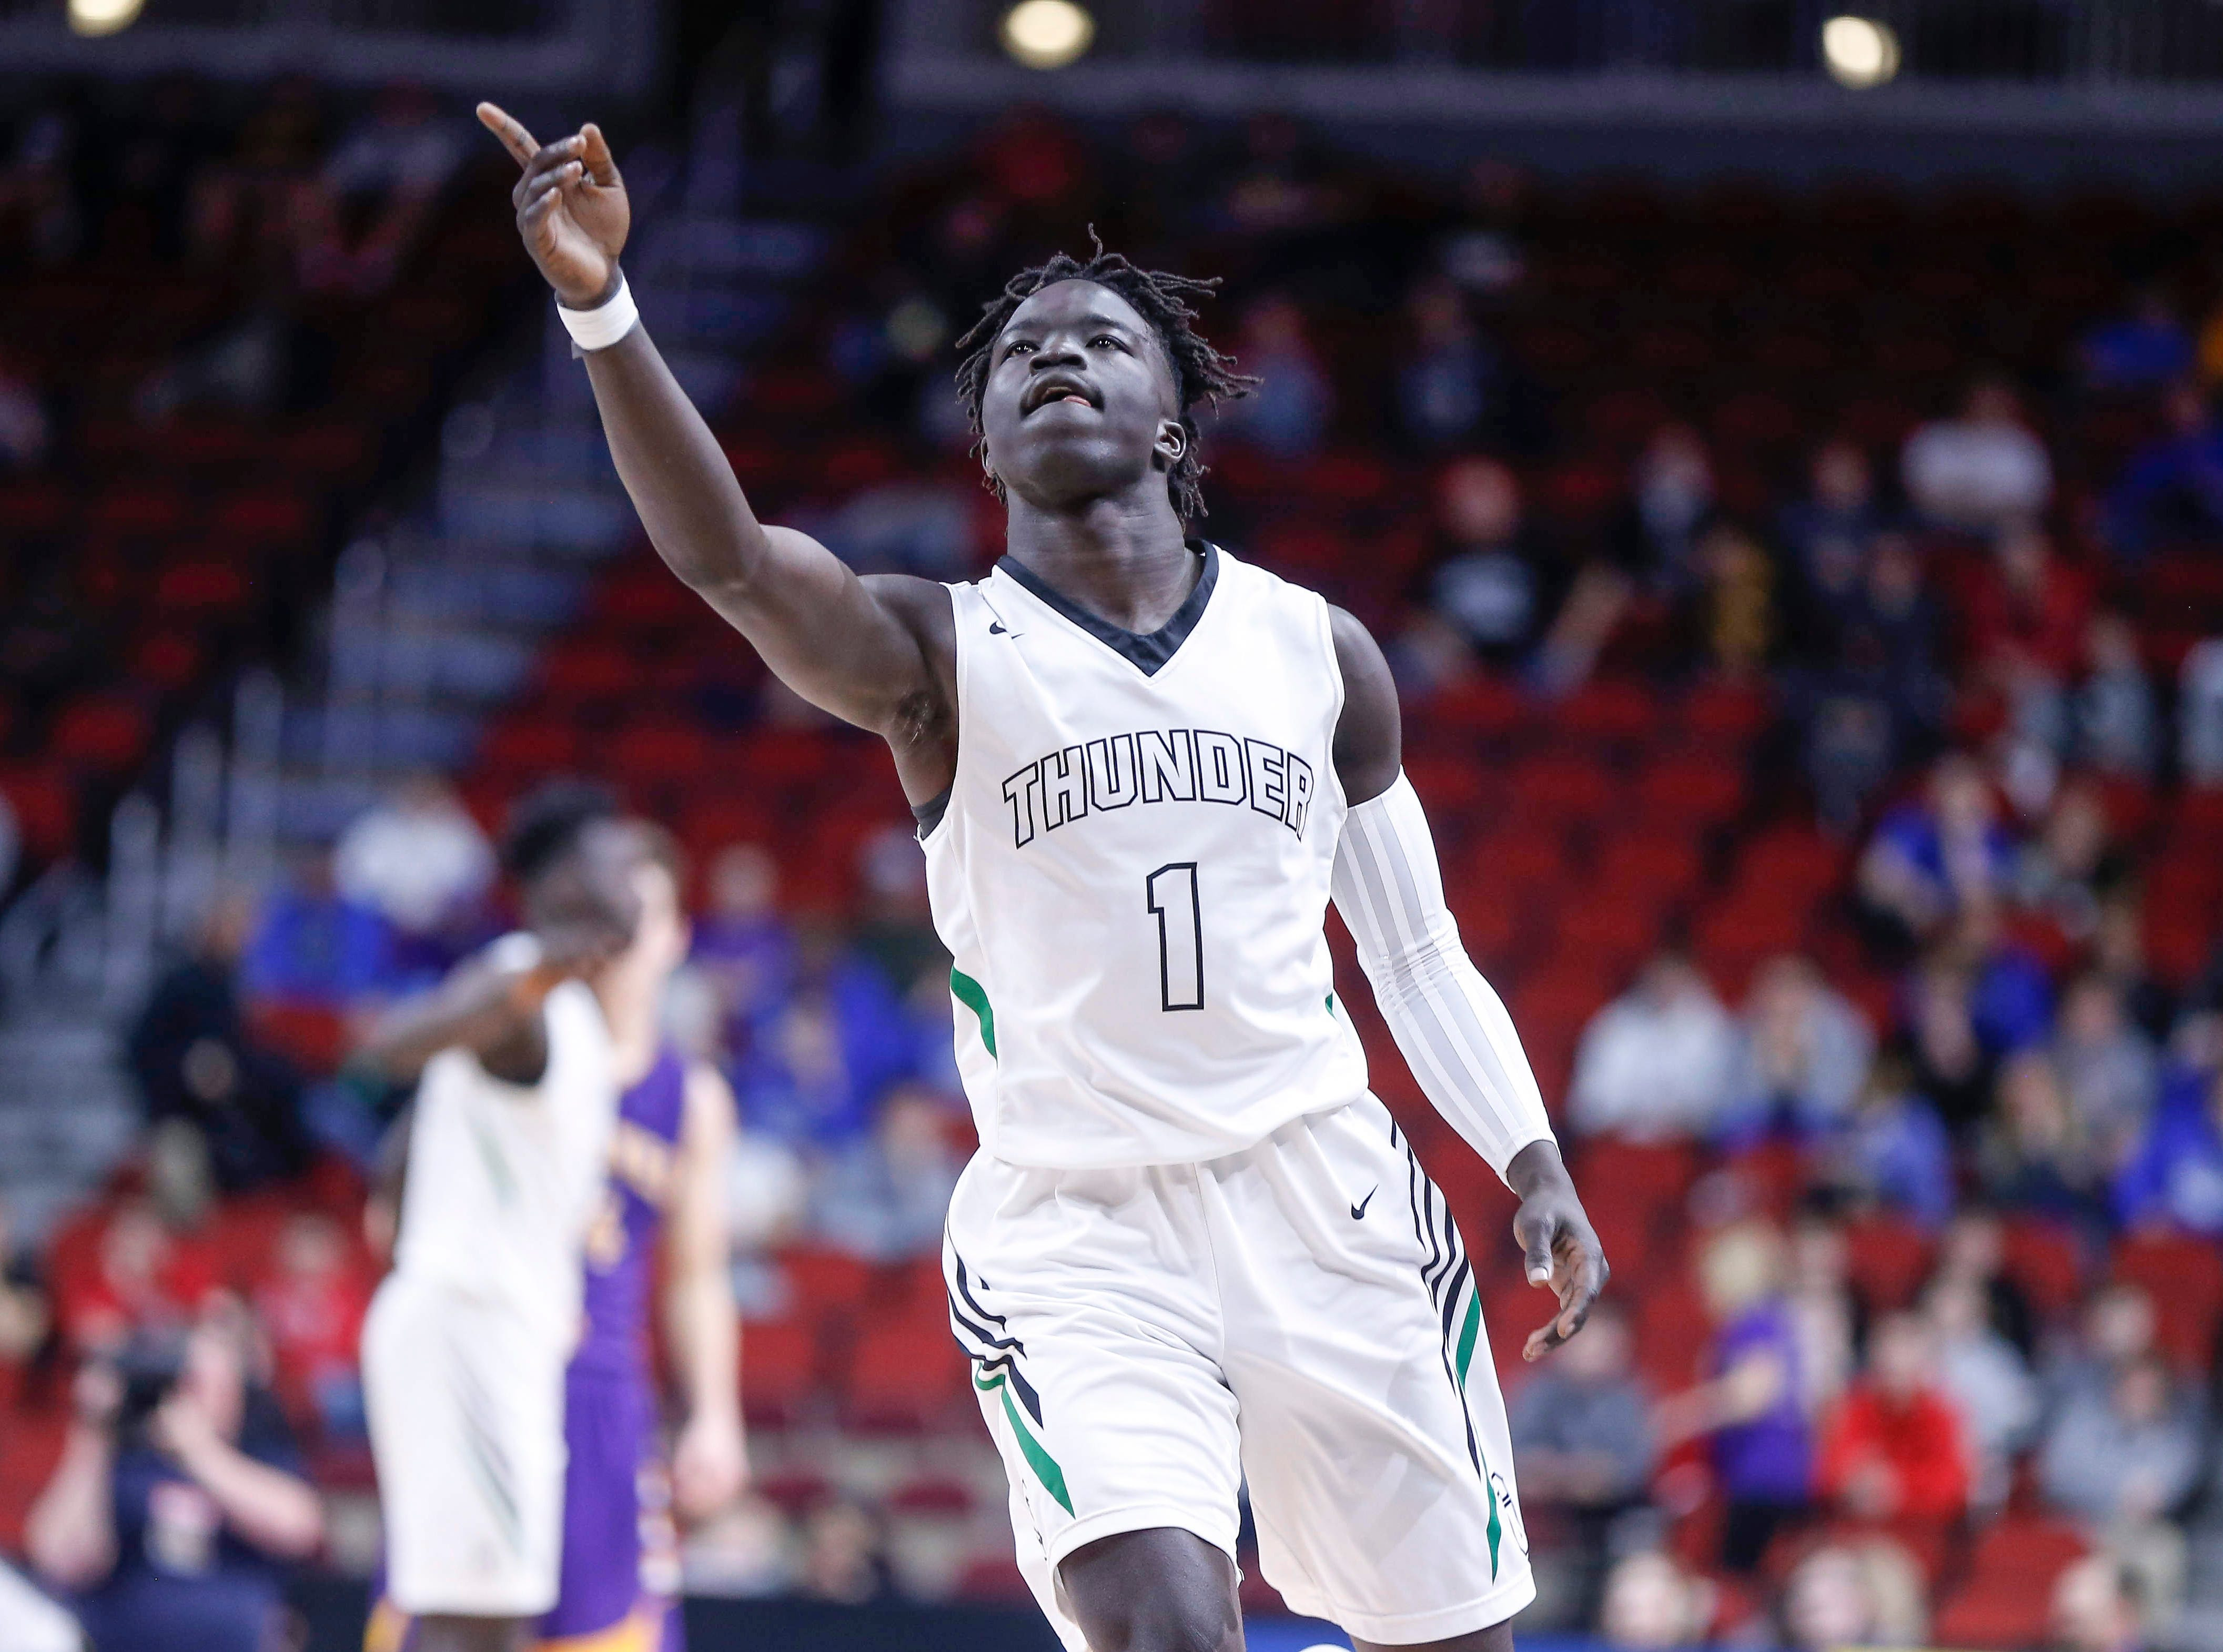 Grand View Christian senior Kong Neyail reacts after scoring a field goal in the fourth quarter against Alburnett during the Class 1A boys state basketball championship game on Friday, March 8, 2019, at Wells Fargo Arena in Des Moines.